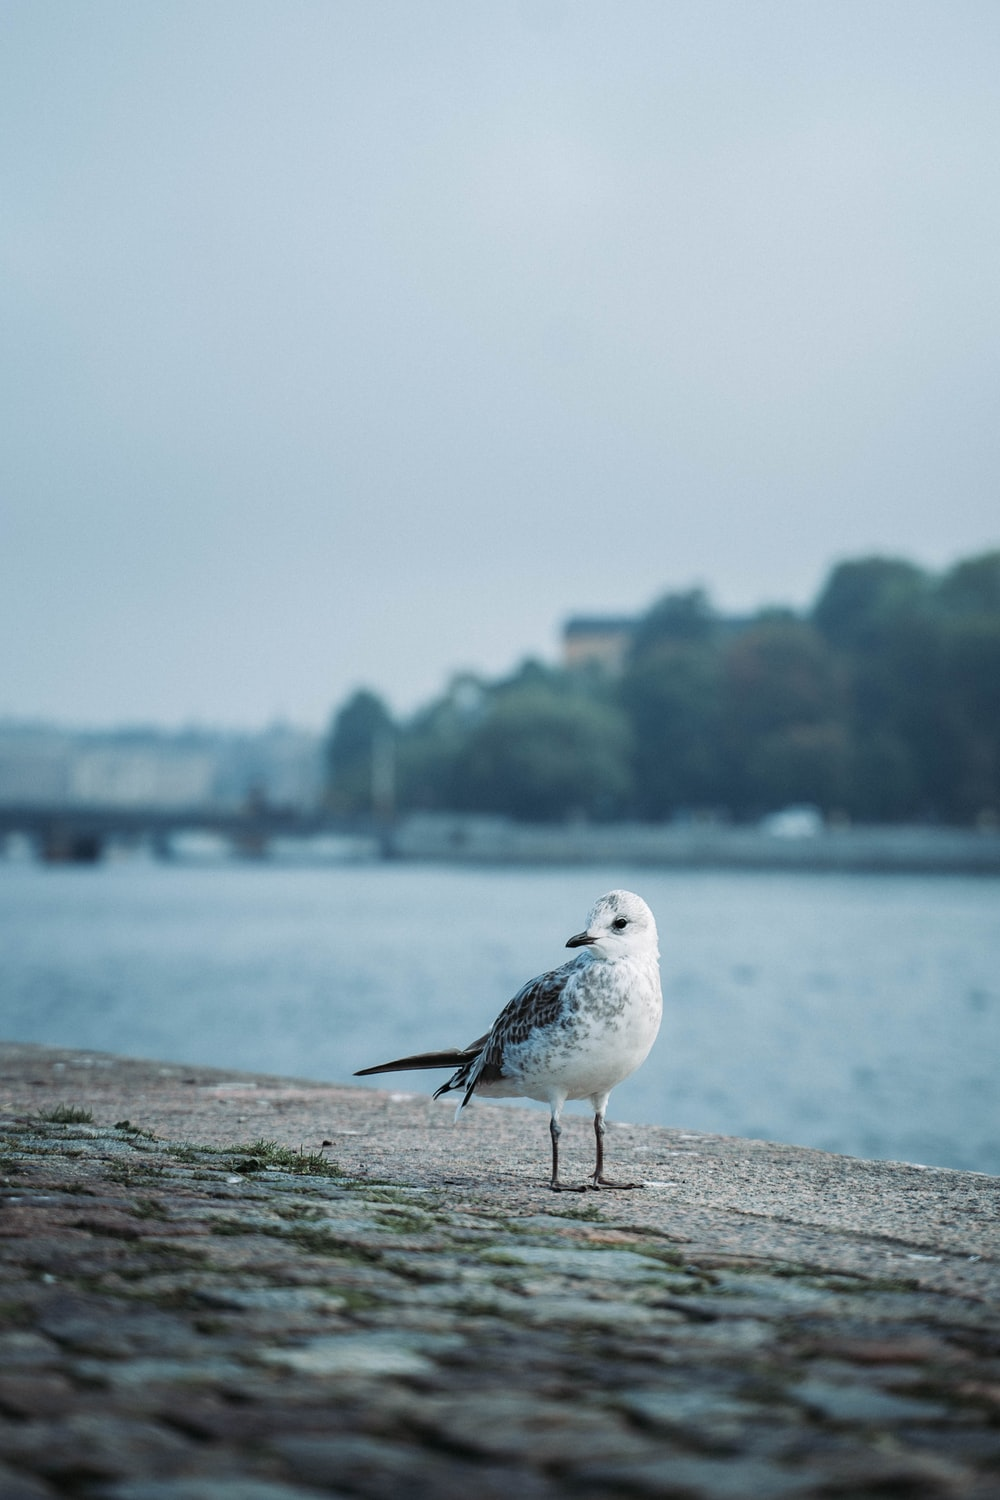 white and gray bird on gray concrete surface near body of water during daytime